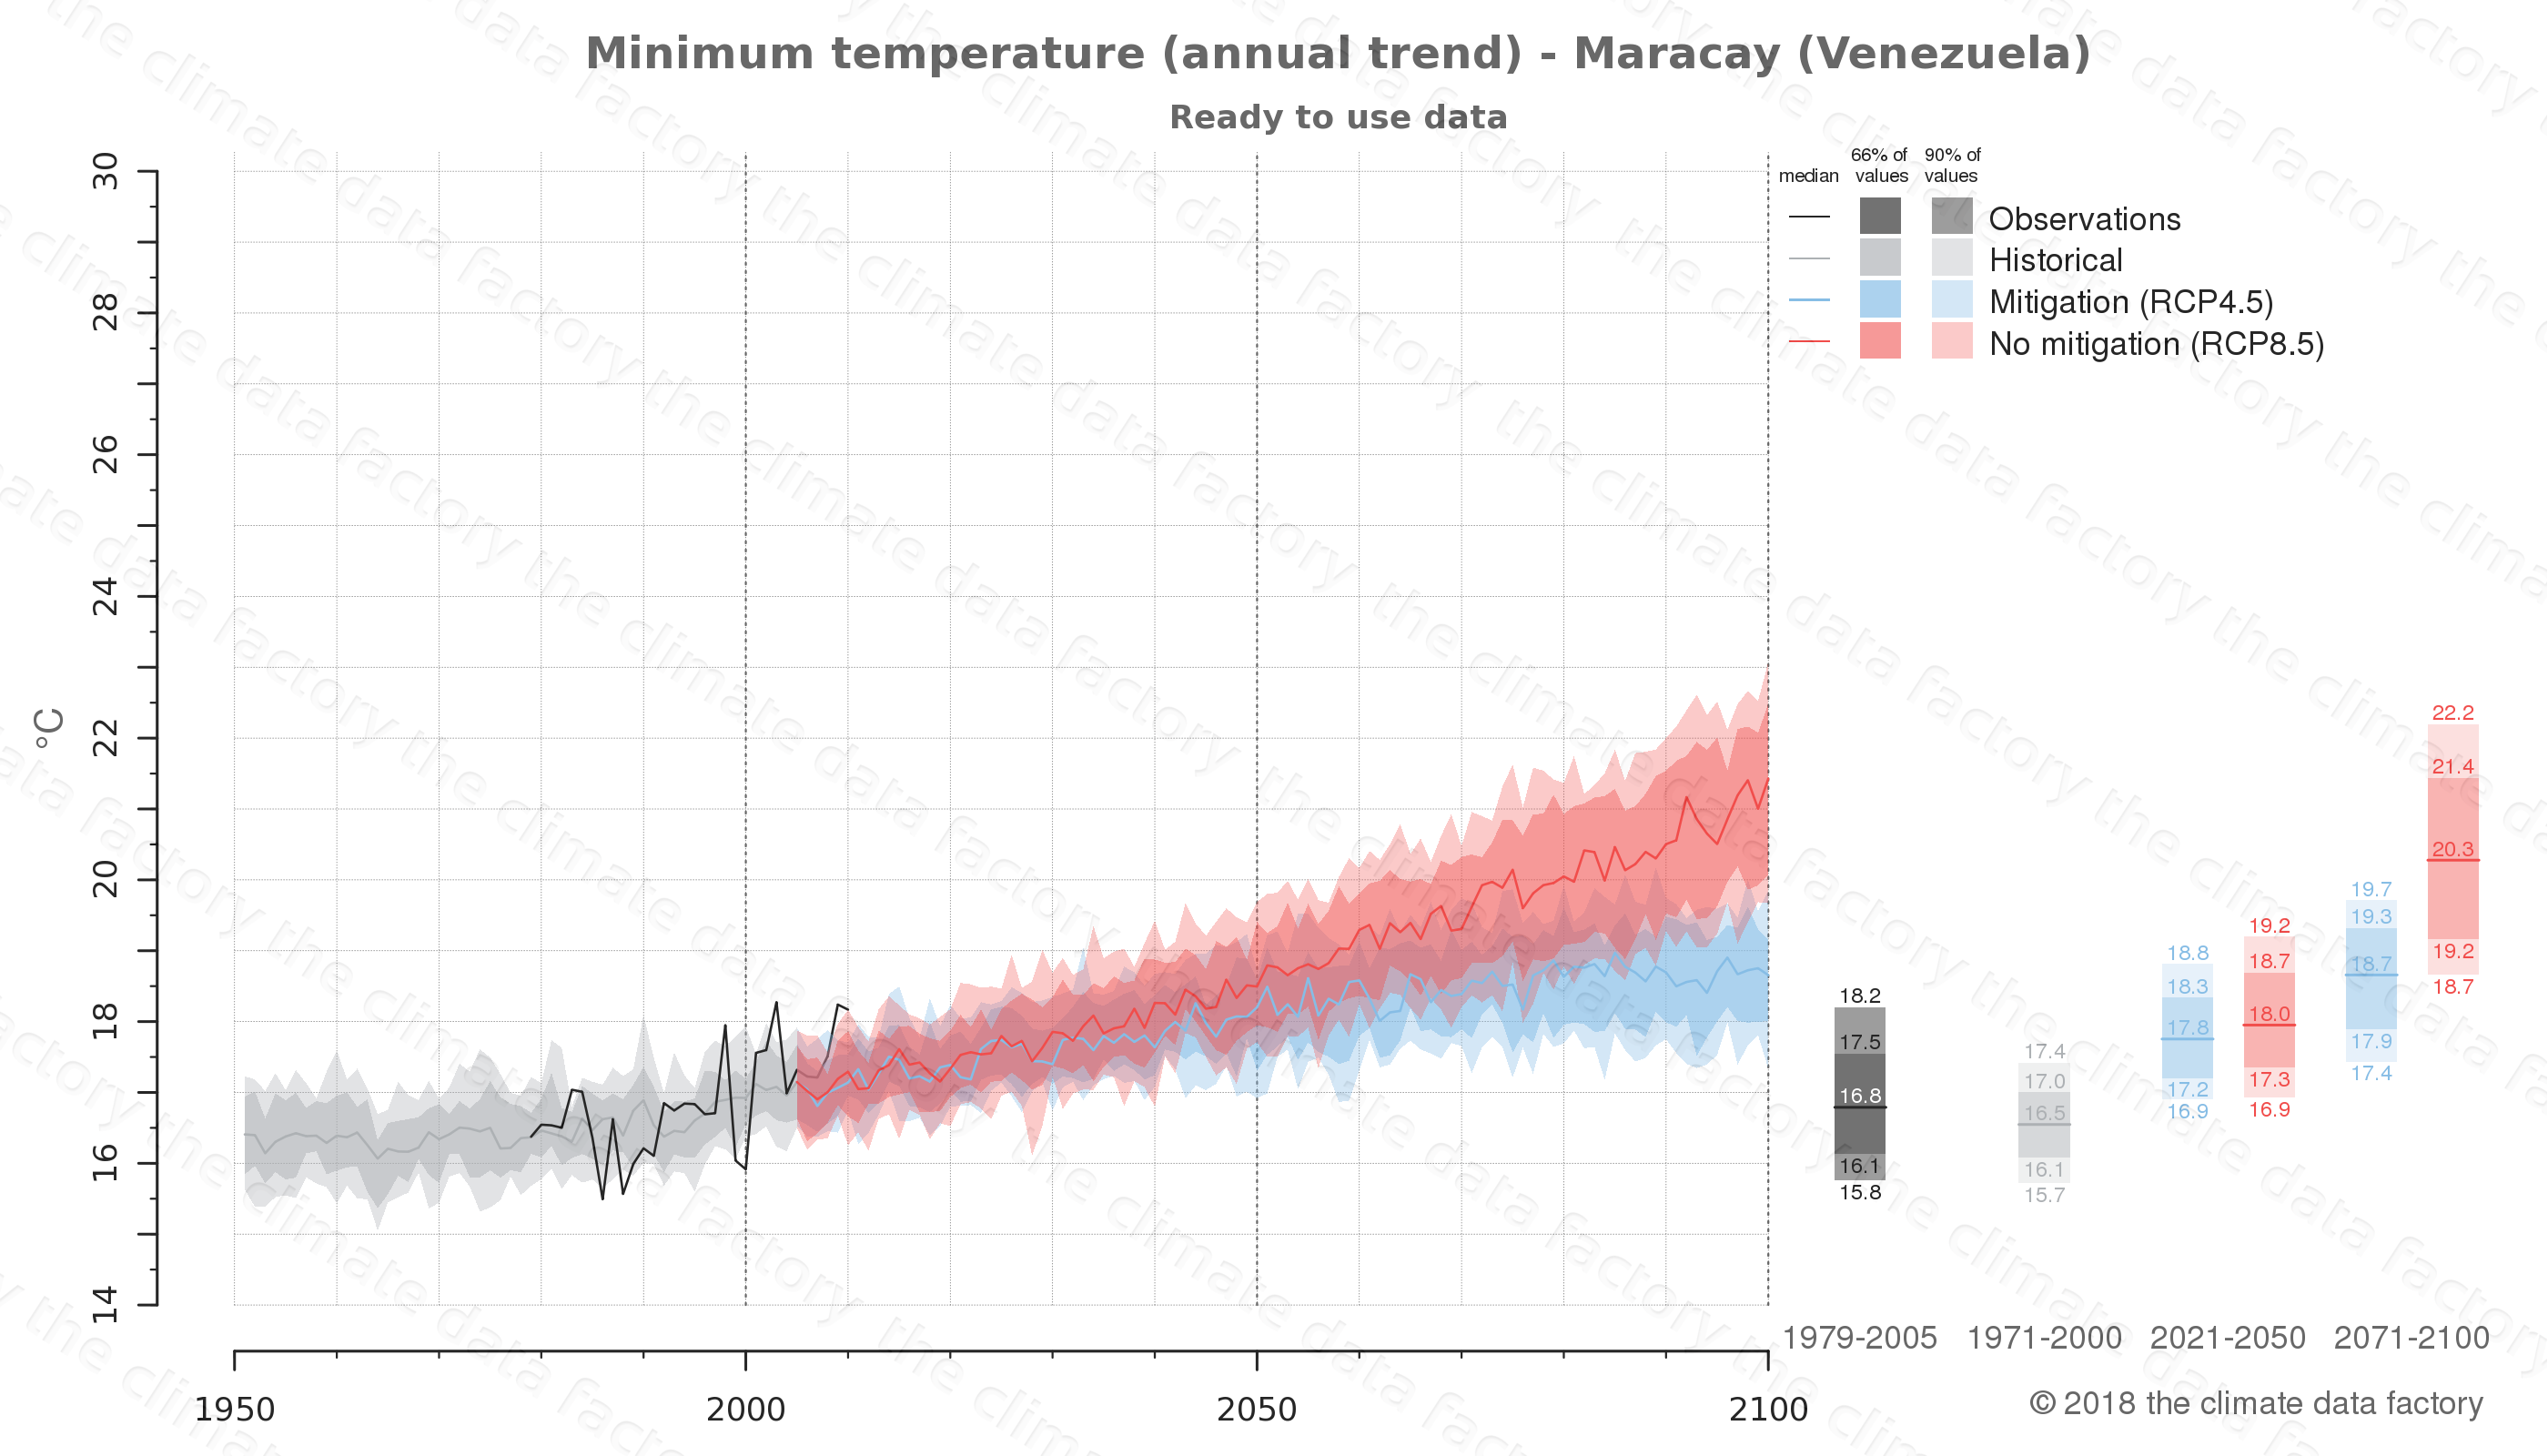 climate change data policy adaptation climate graph city data minimum-temperature maracay venezuela